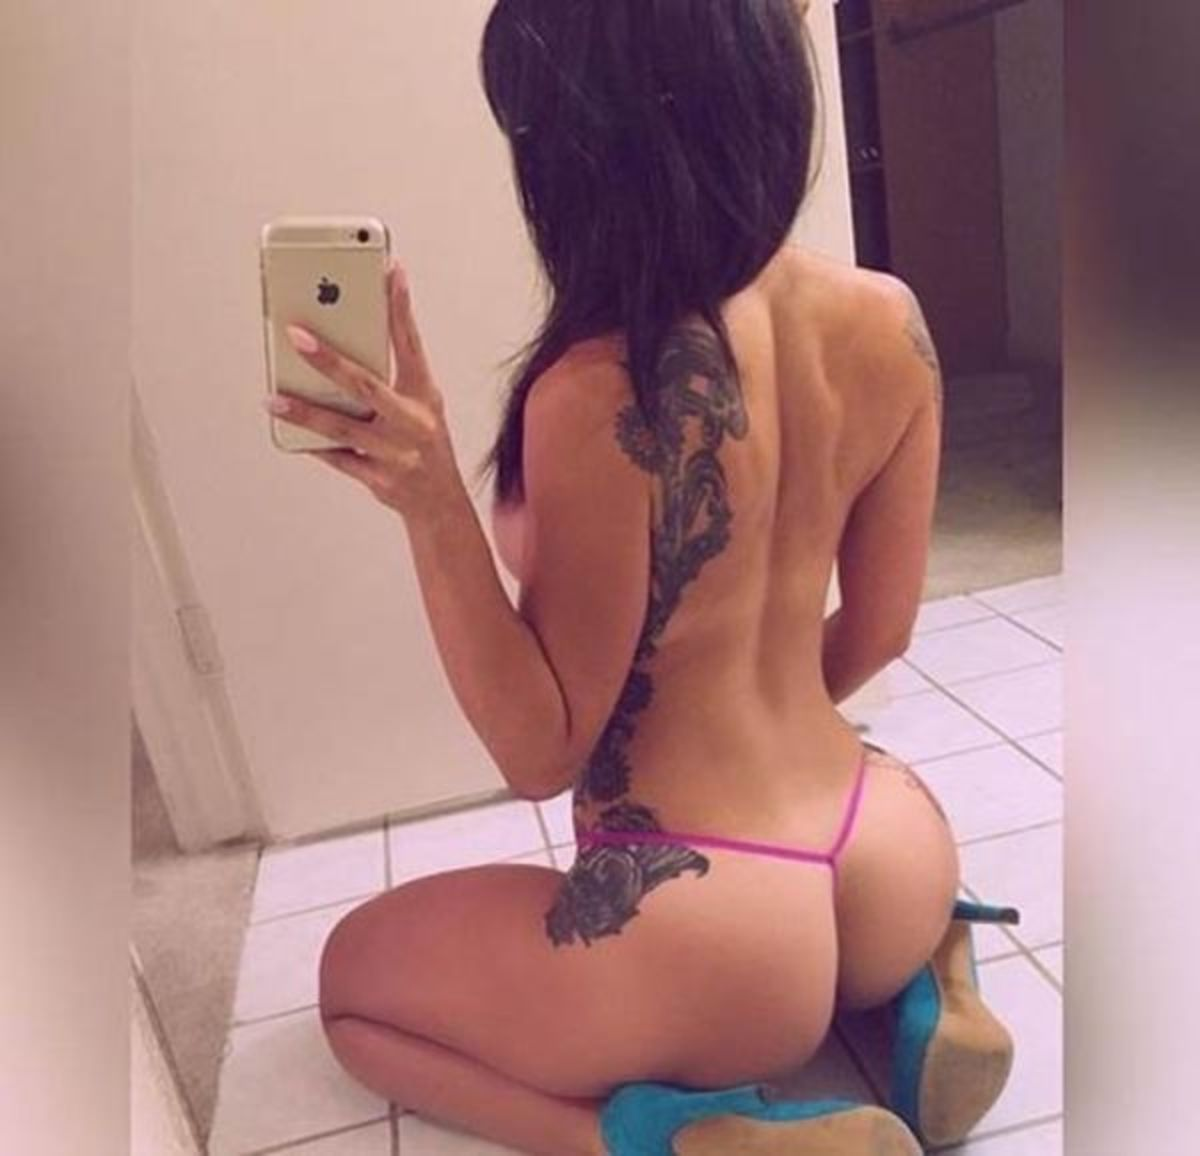 Thongs, high heels and tattoos make a deadly combo.